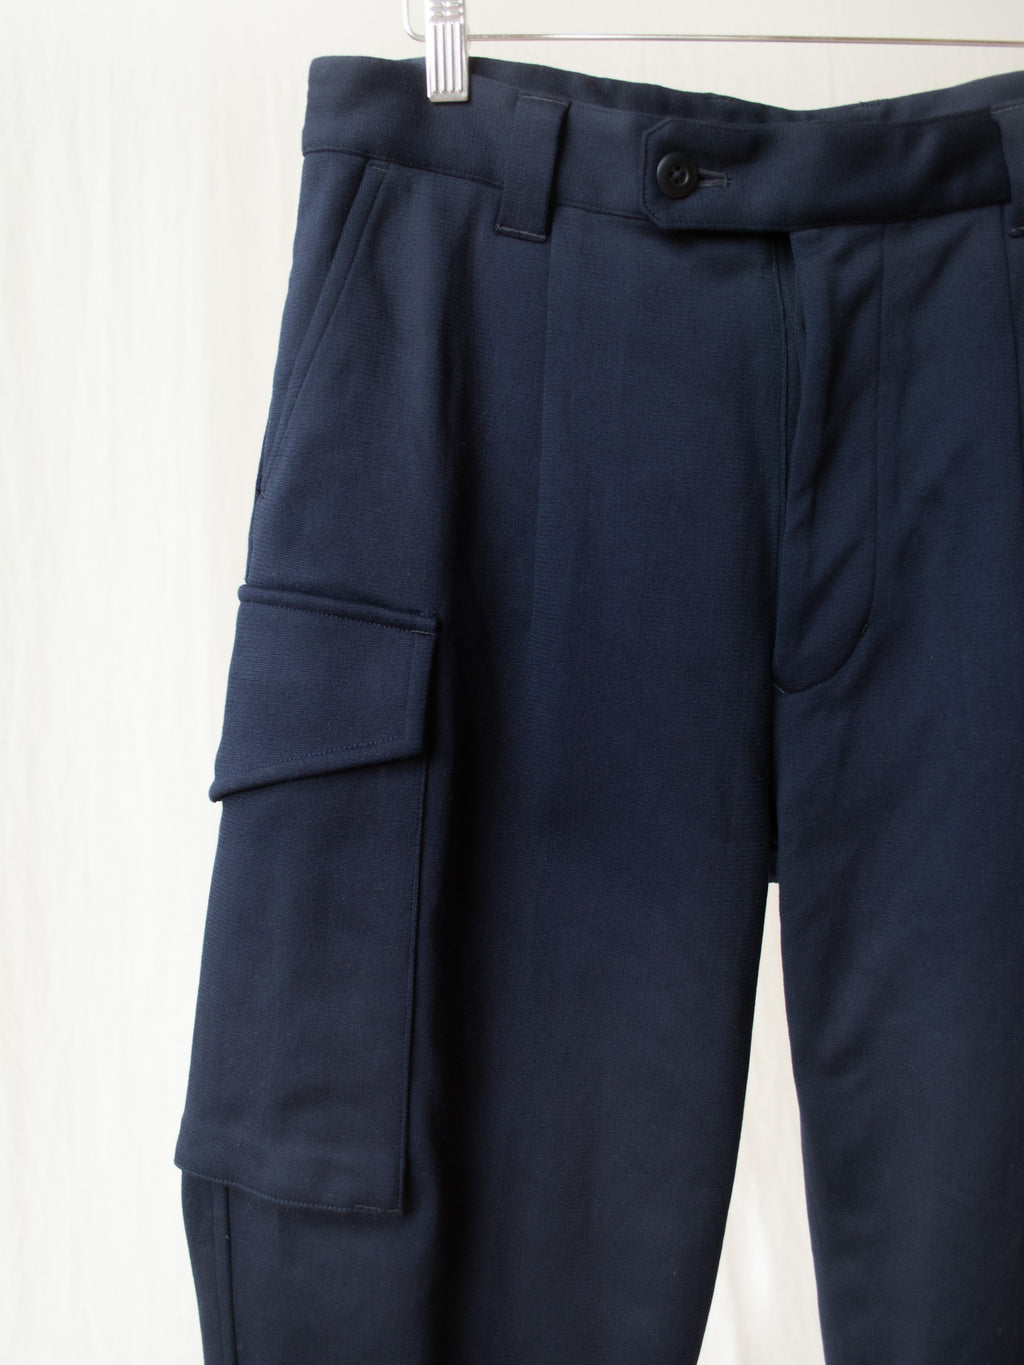 Namu Shop - ts(s) Military Pants - Navy